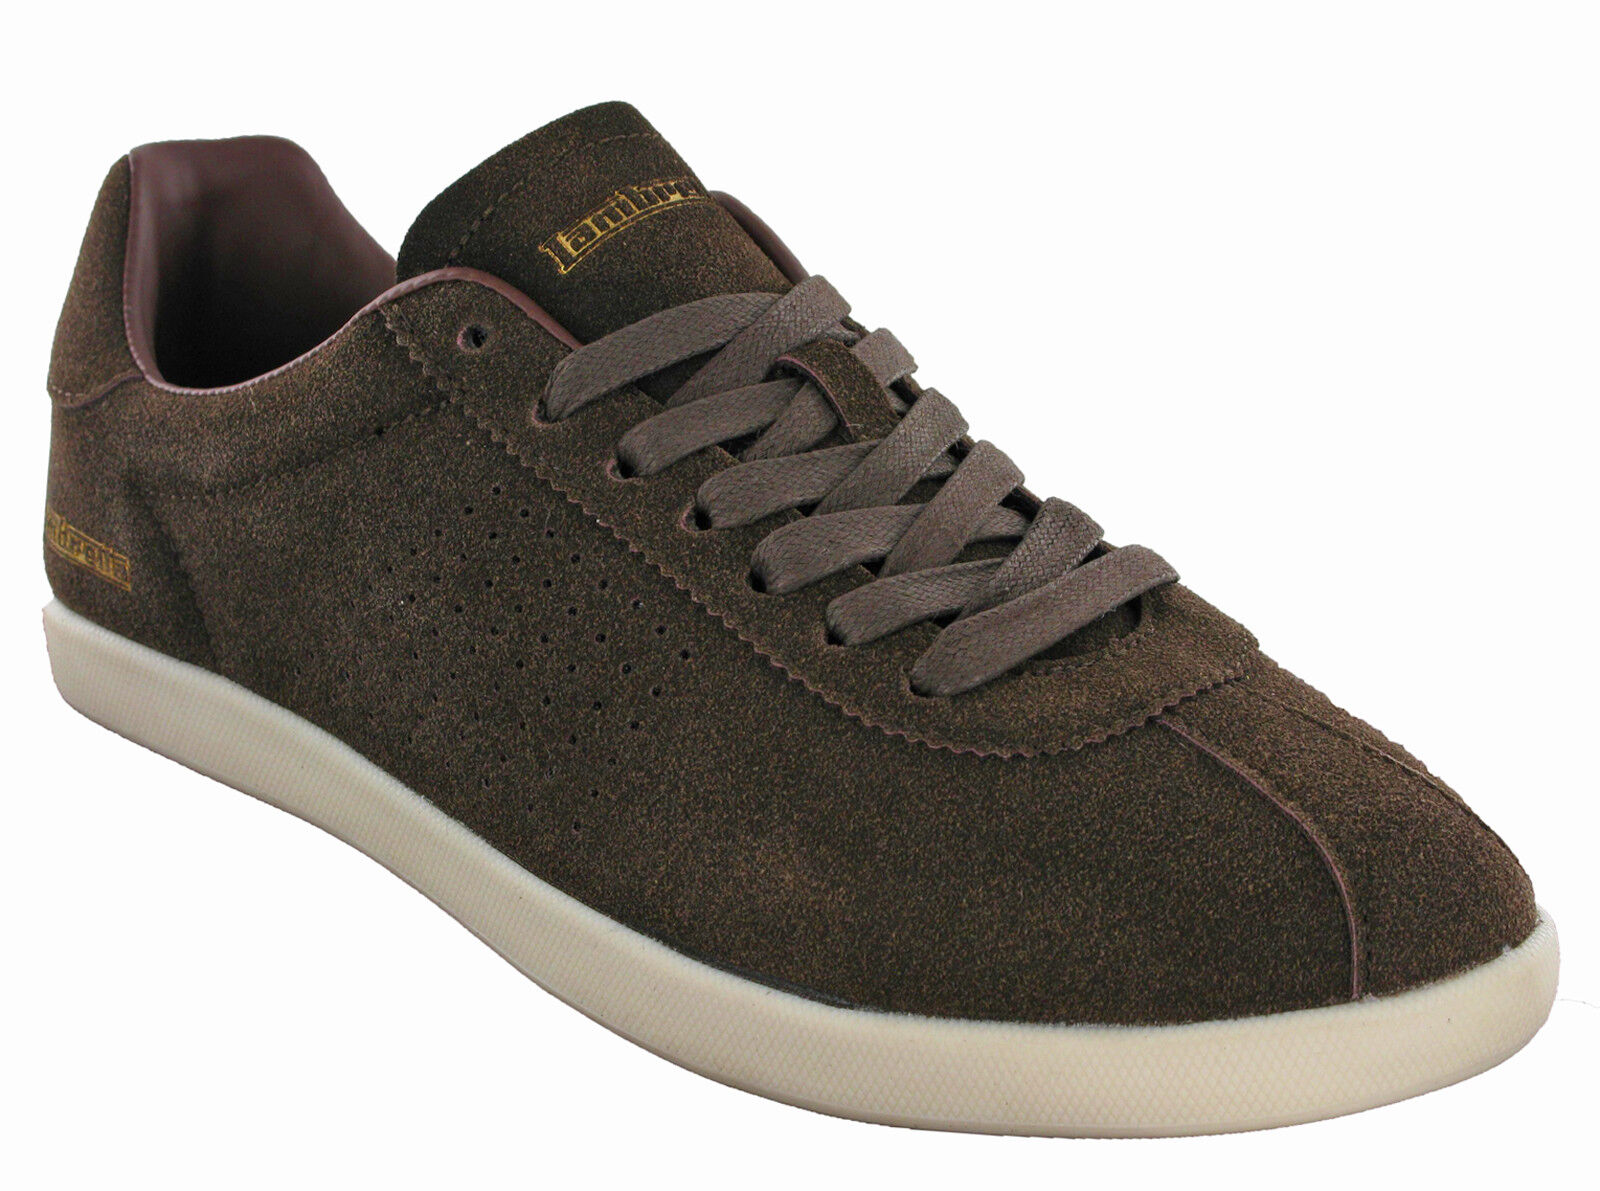 Lambretta Mens Trainers Casual Sports Lace Memory Foam Gazzman Shoes UK 7-12